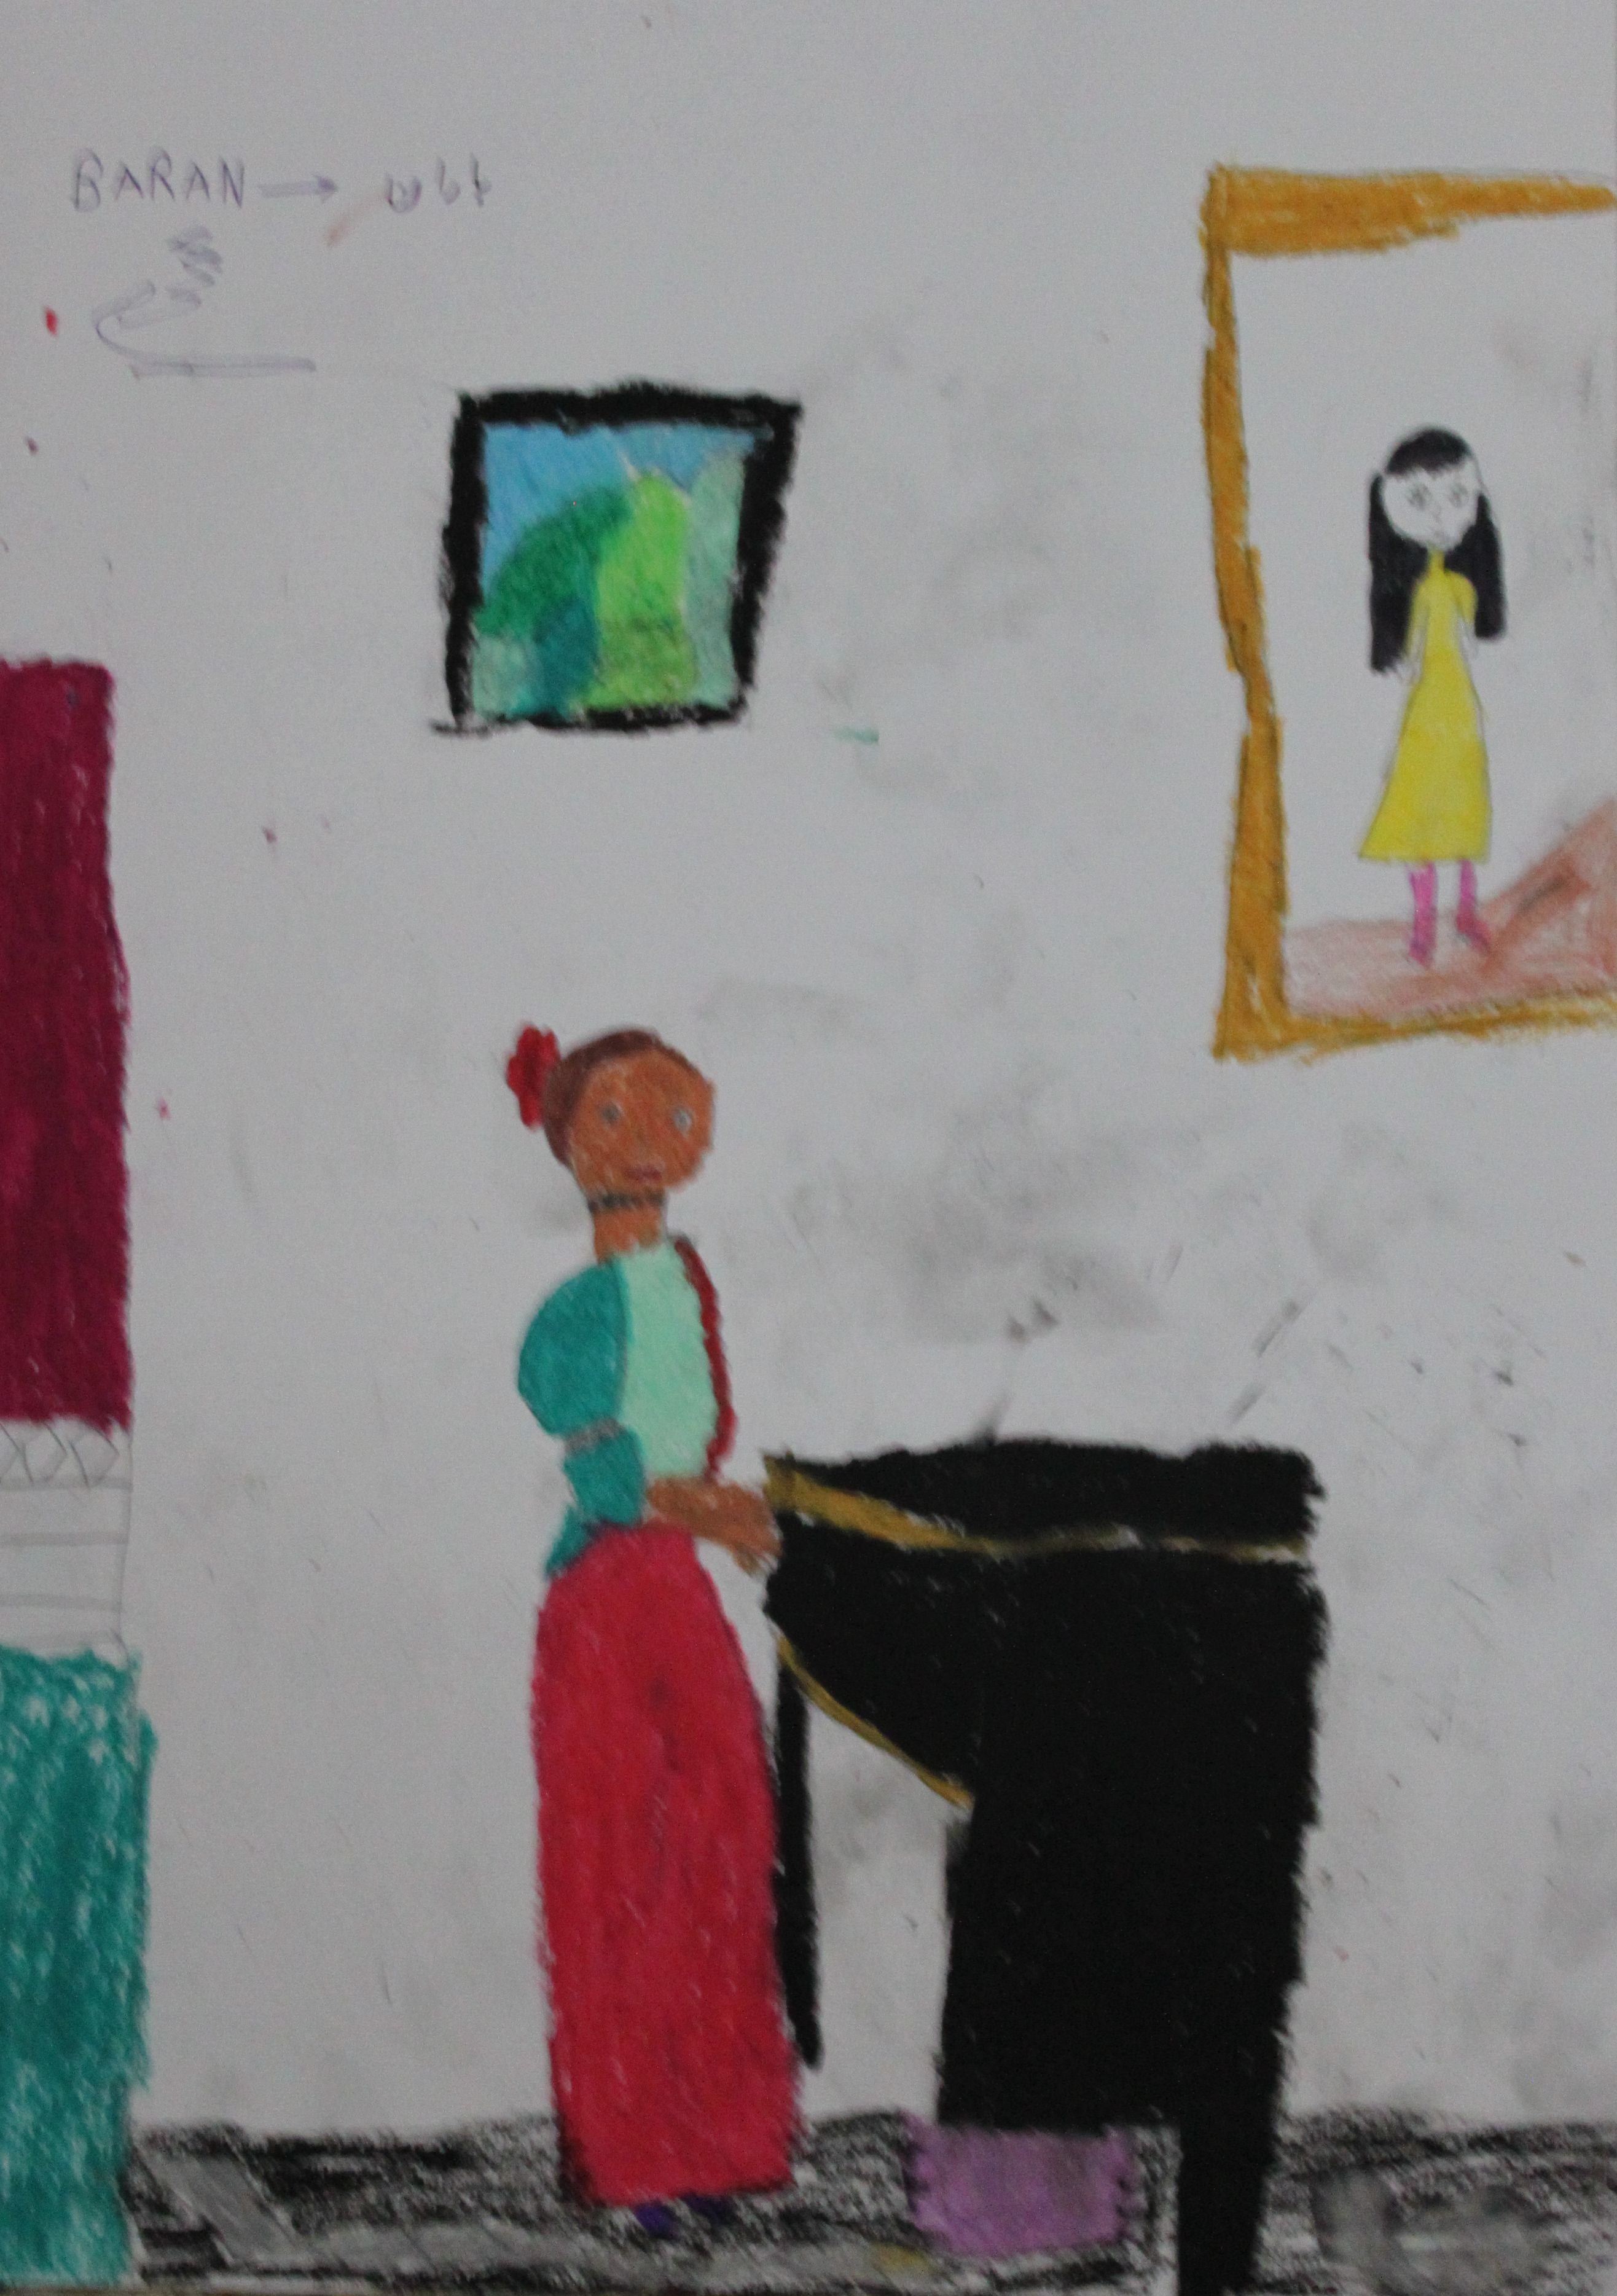 Baran, aged 11, inspired by Johannes Vermeer, 'A Young Woman standing at a Virginal'